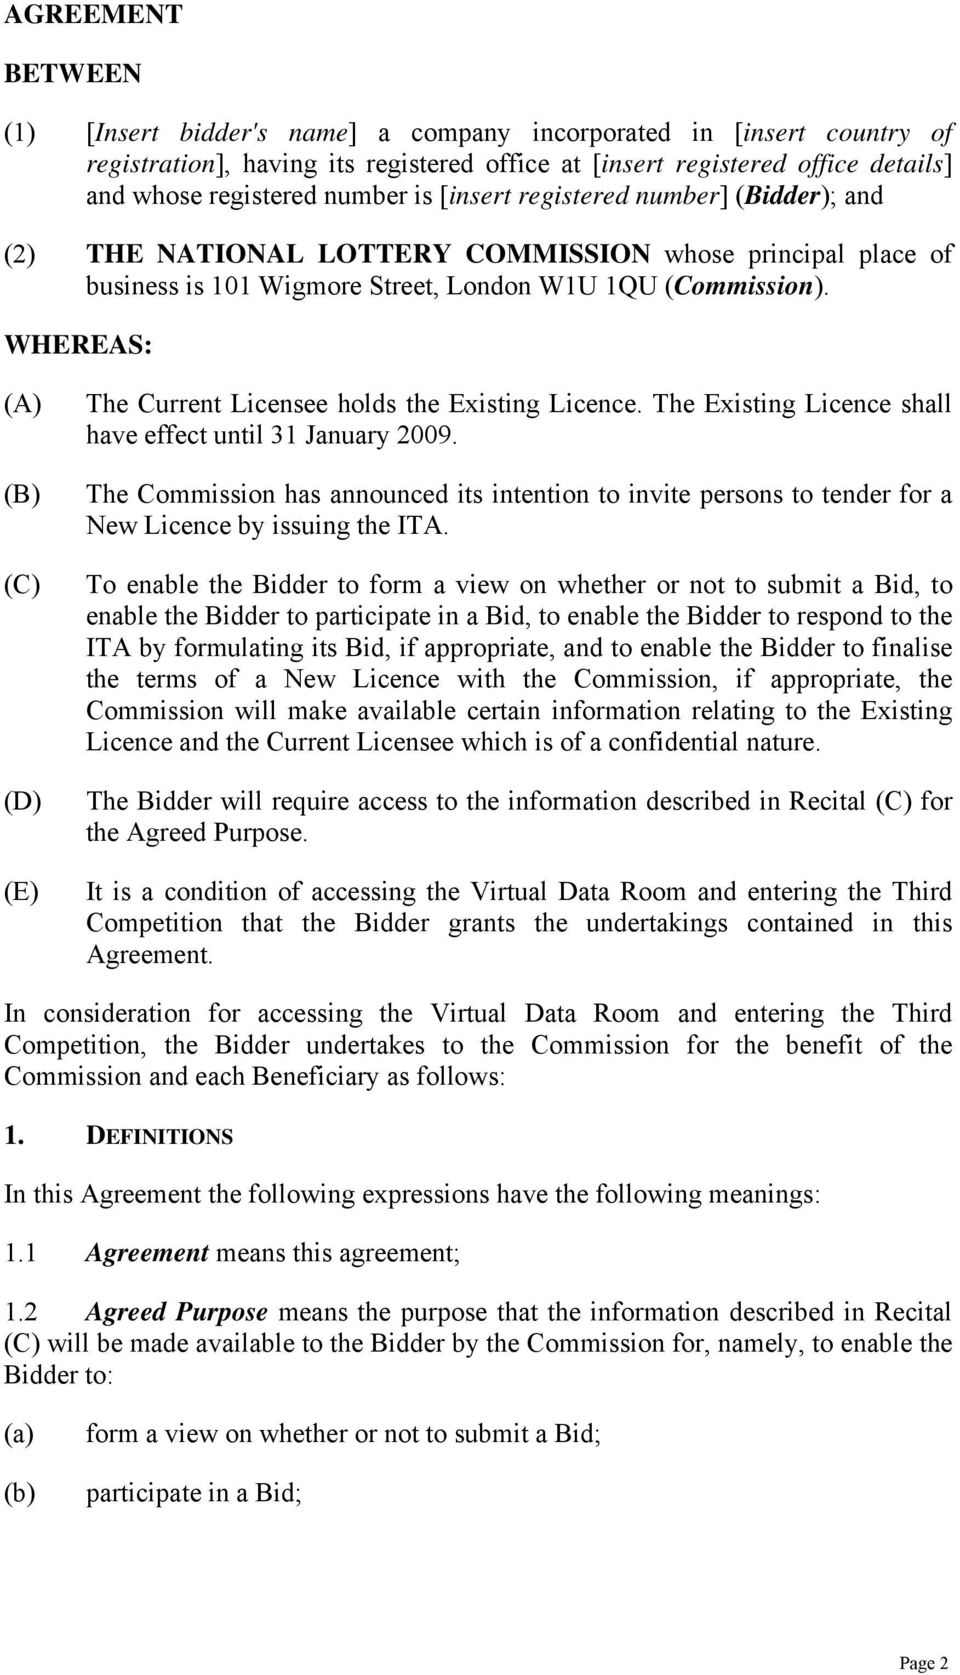 WHEREAS: (A) (B) (C) (D) (E) The Current Licensee holds the Existing Licence. The Existing Licence shall have effect until 31 January 2009.